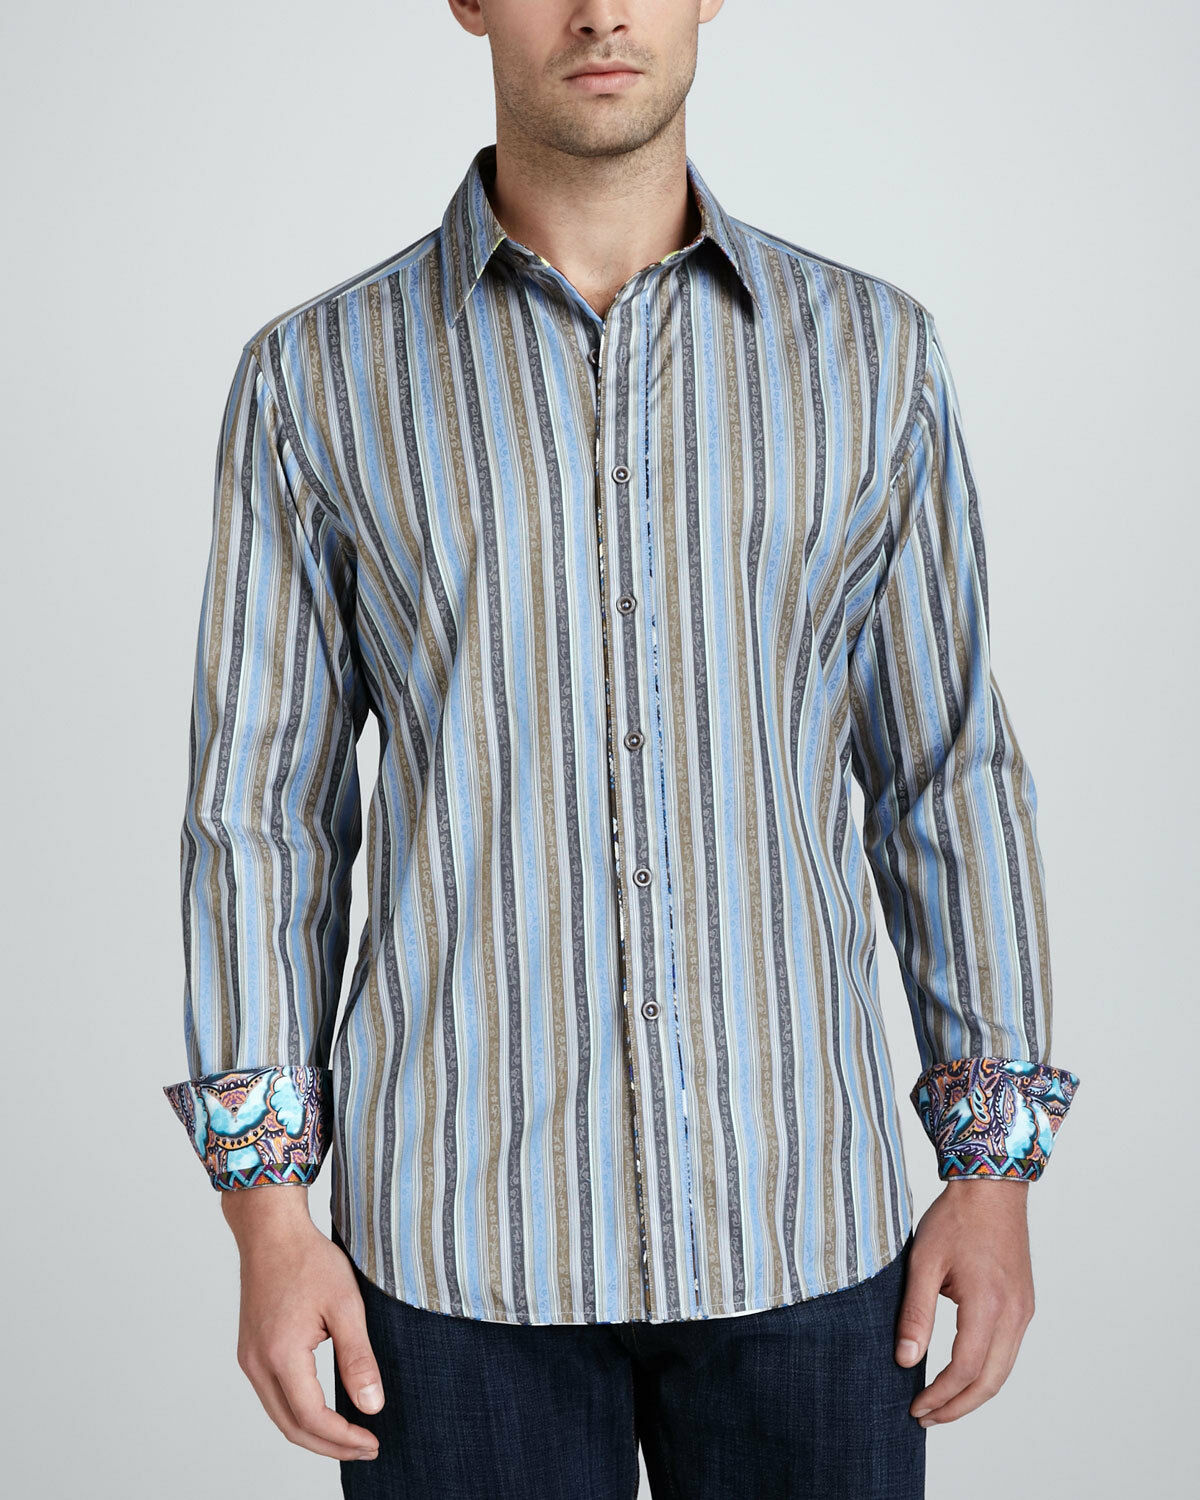 Robert Graham Davis Shirt - Classic Fit - Size LARGE - NEW WITH TAGS